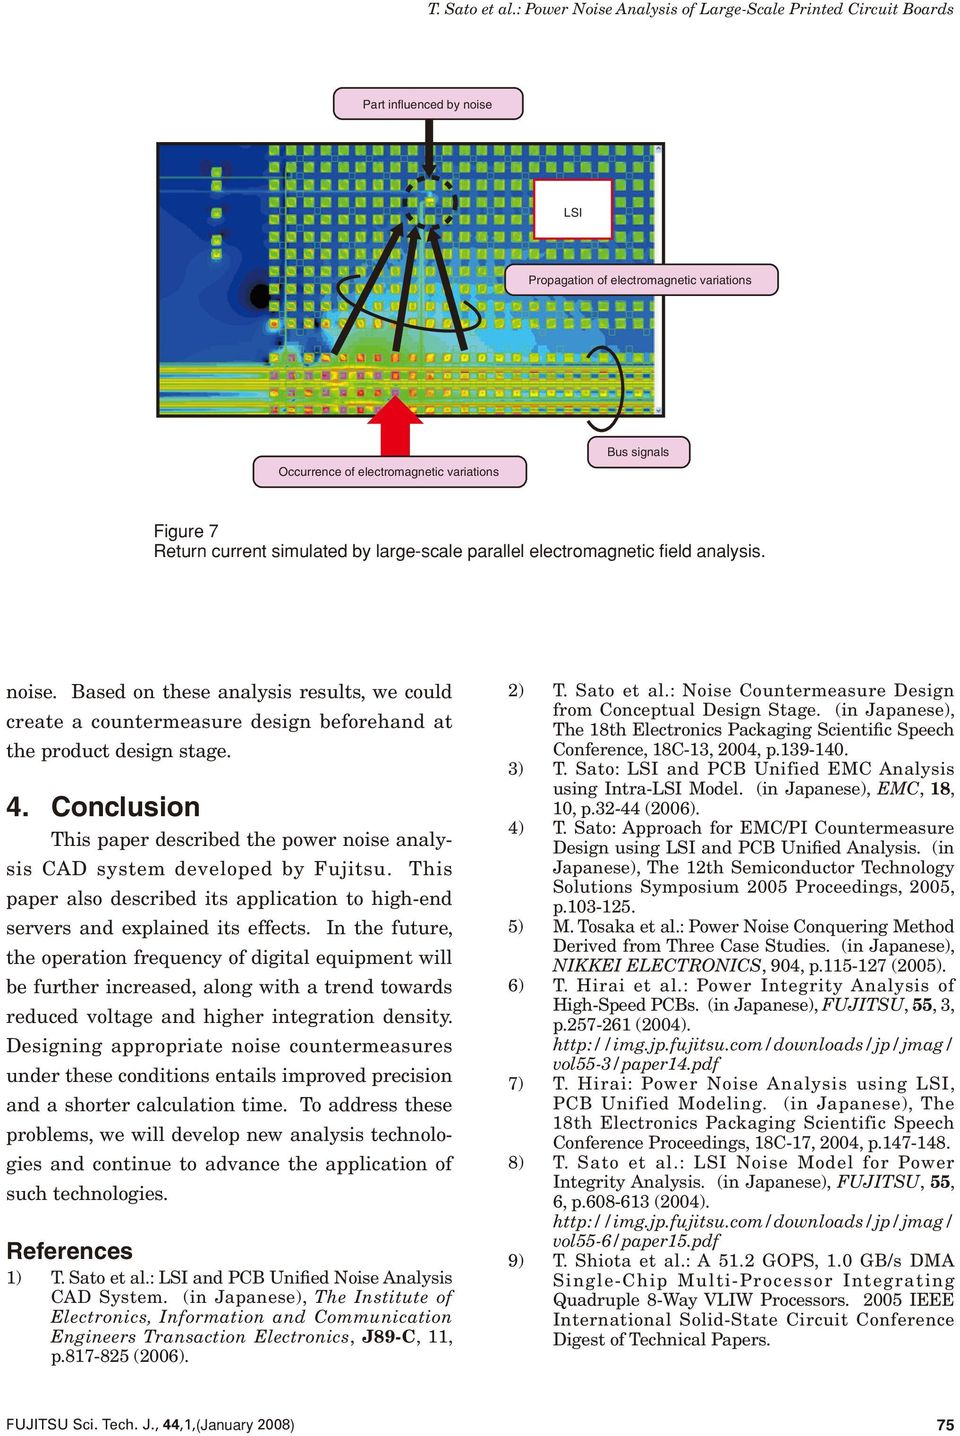 Conclusion This paper described the power noise analysis CAD system developed by Fujitsu. This paper also described its application to high-end servers and explained its effects.